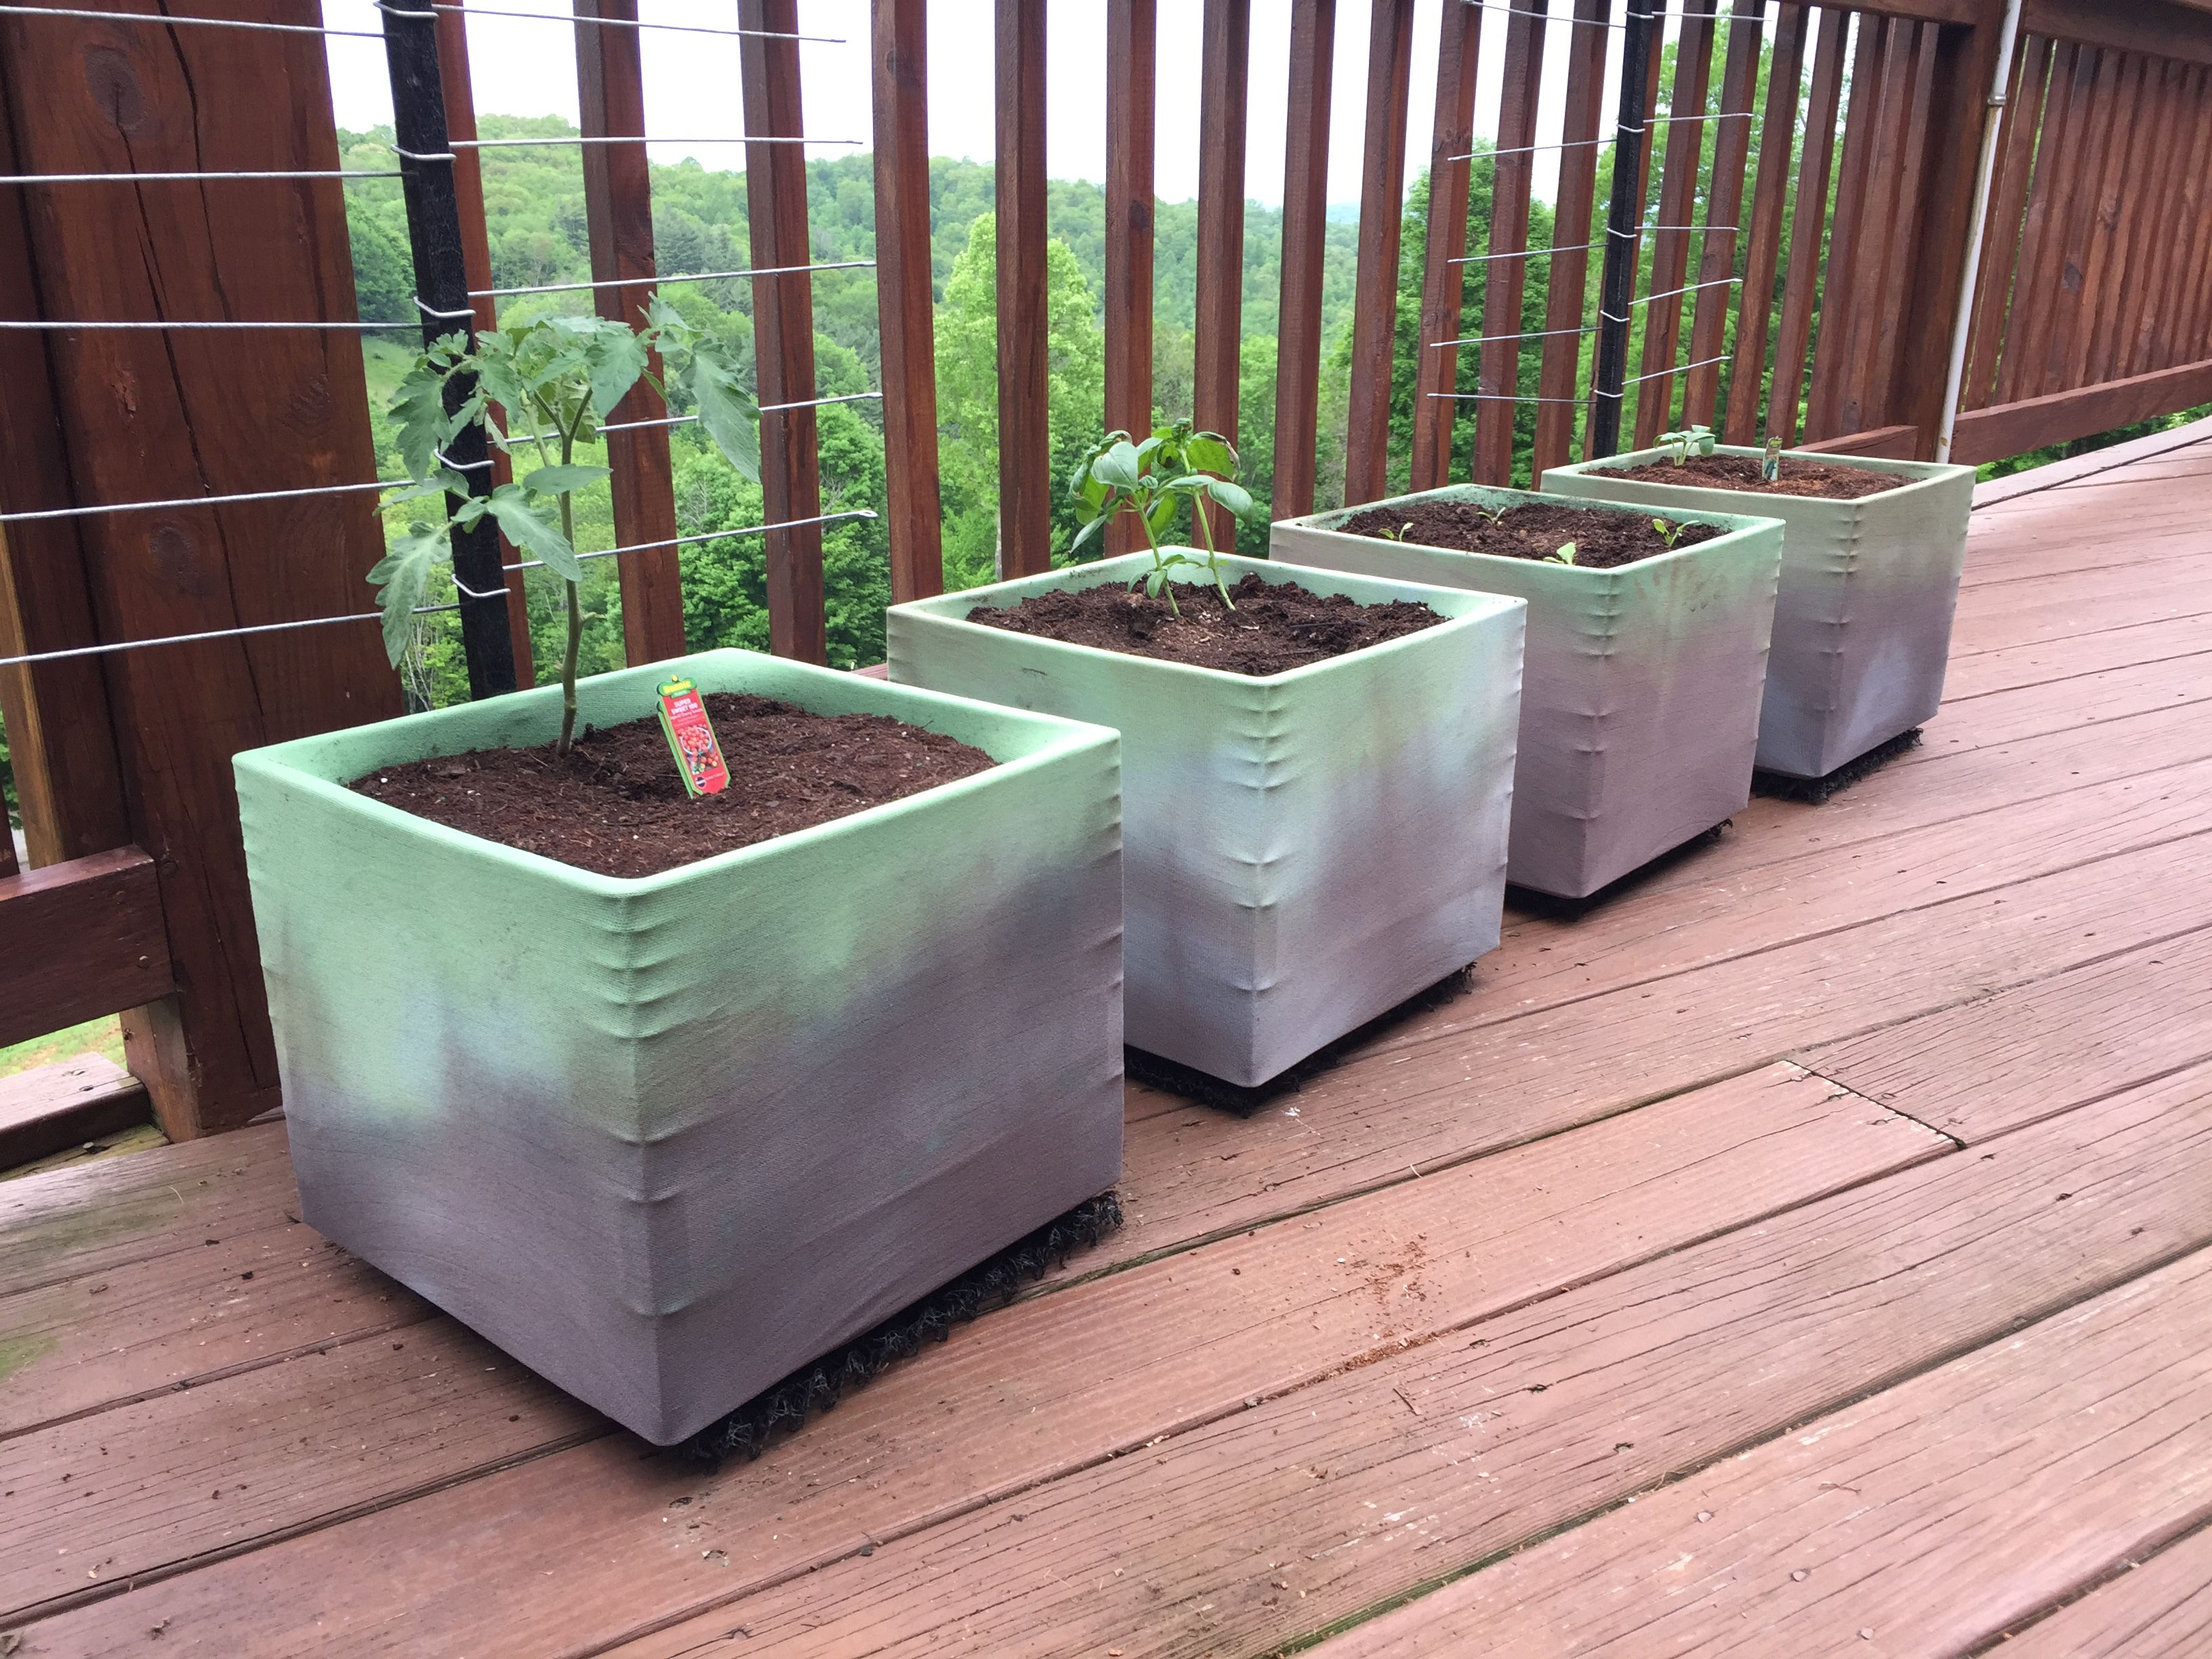 Stretch Grow Fabric Turns A Milk Crate Into An Awesome Planter Milk Crates Planters Crates